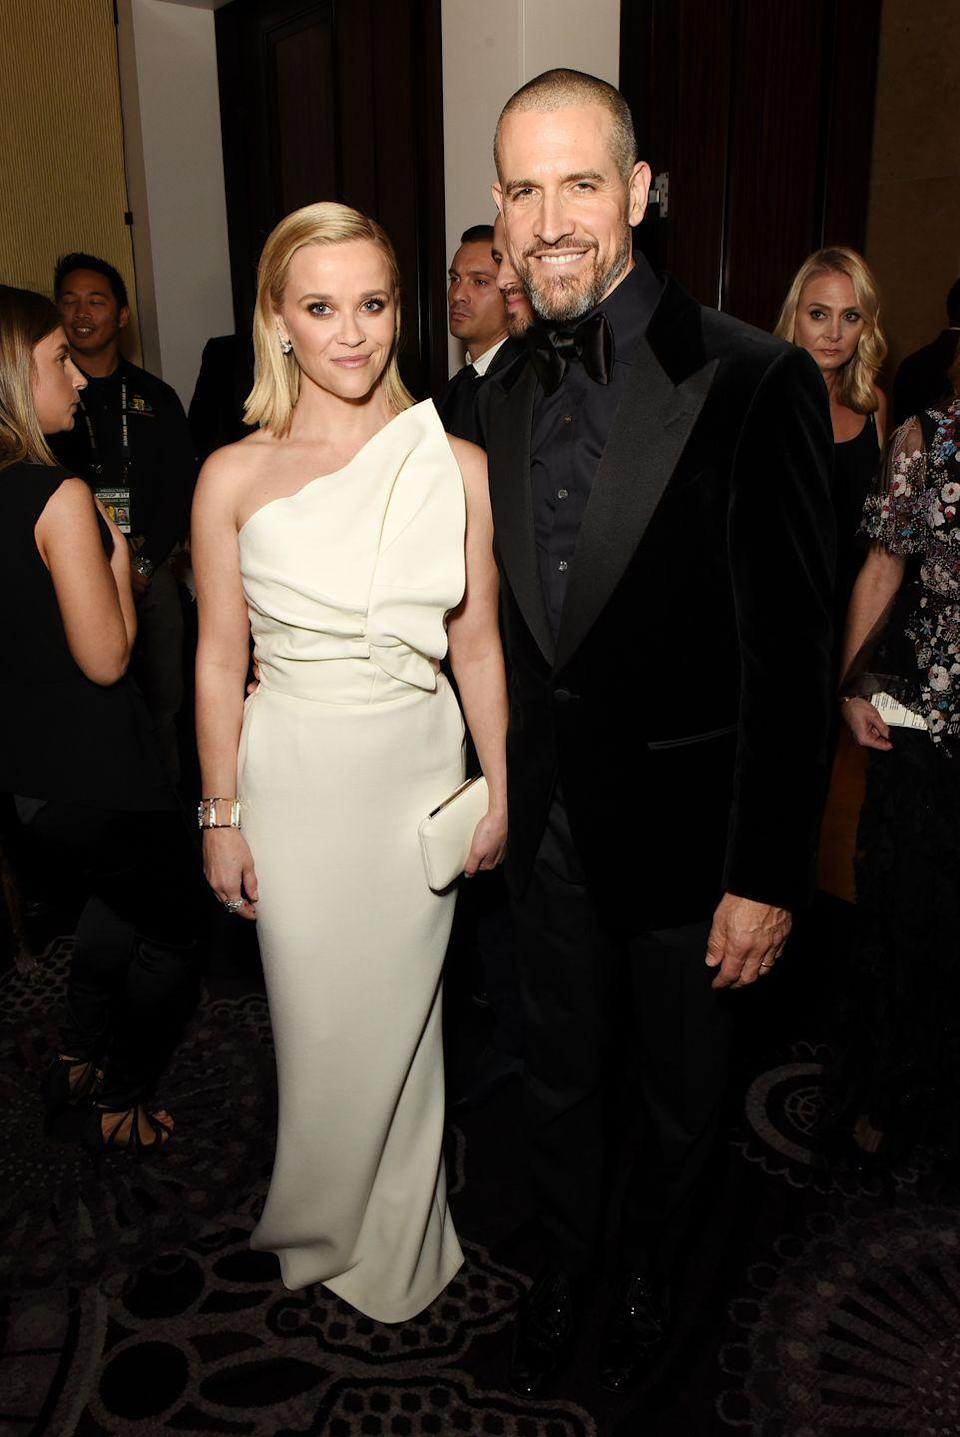 <p>Reese Witherspoon and talent agent Jim Toth tied the knot in 2011. The following year, the couple had son Tennessee James.</p>